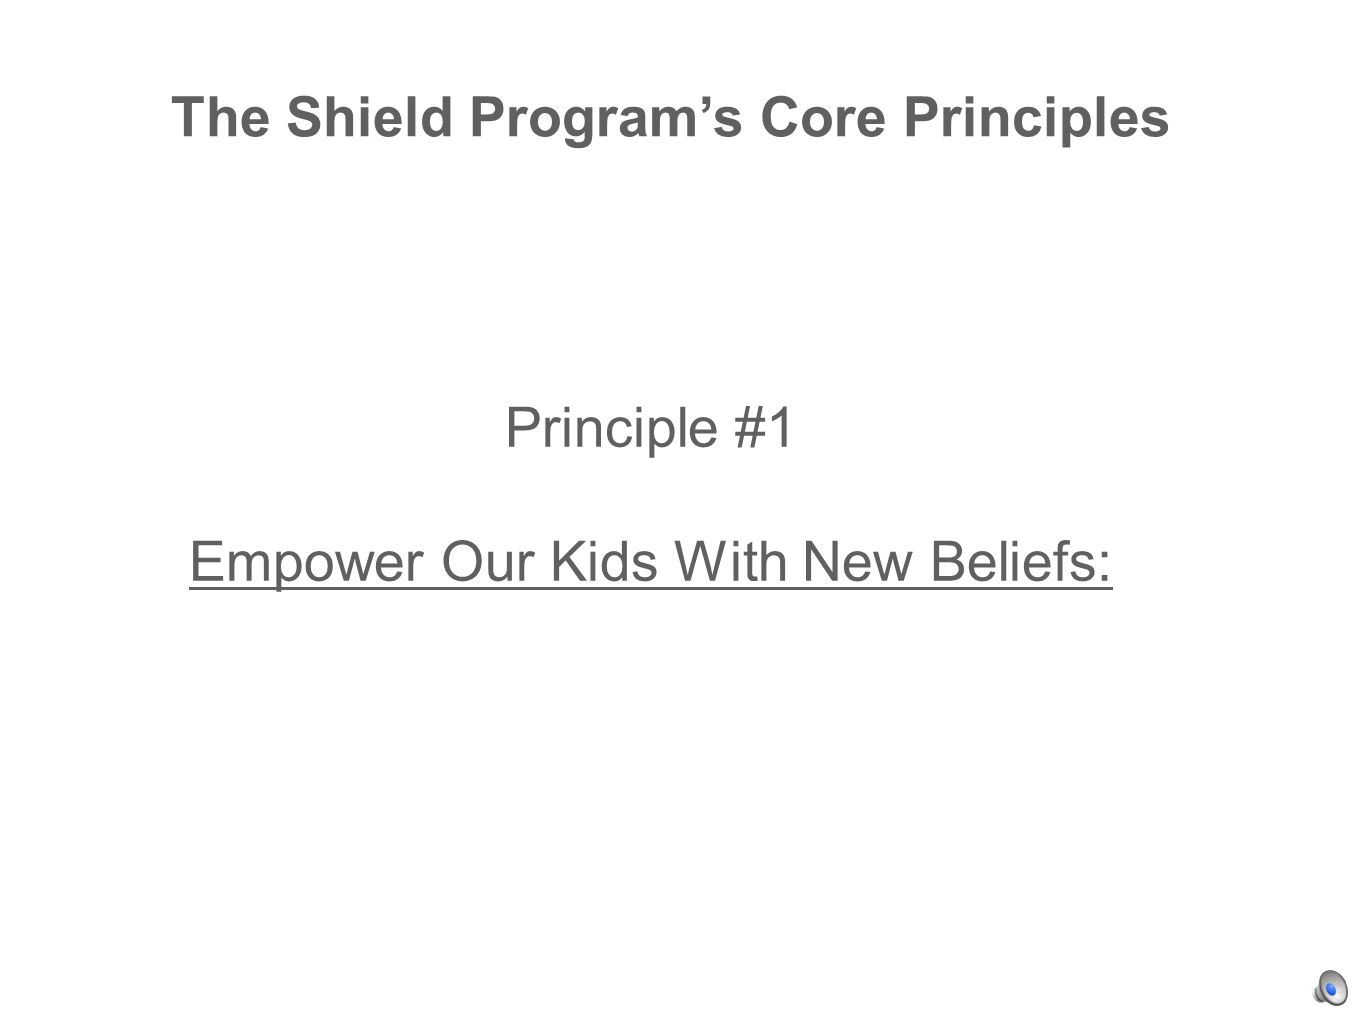 The Shield Programs Core Principles Principle #1 Empower Our Kids With New Beliefs: